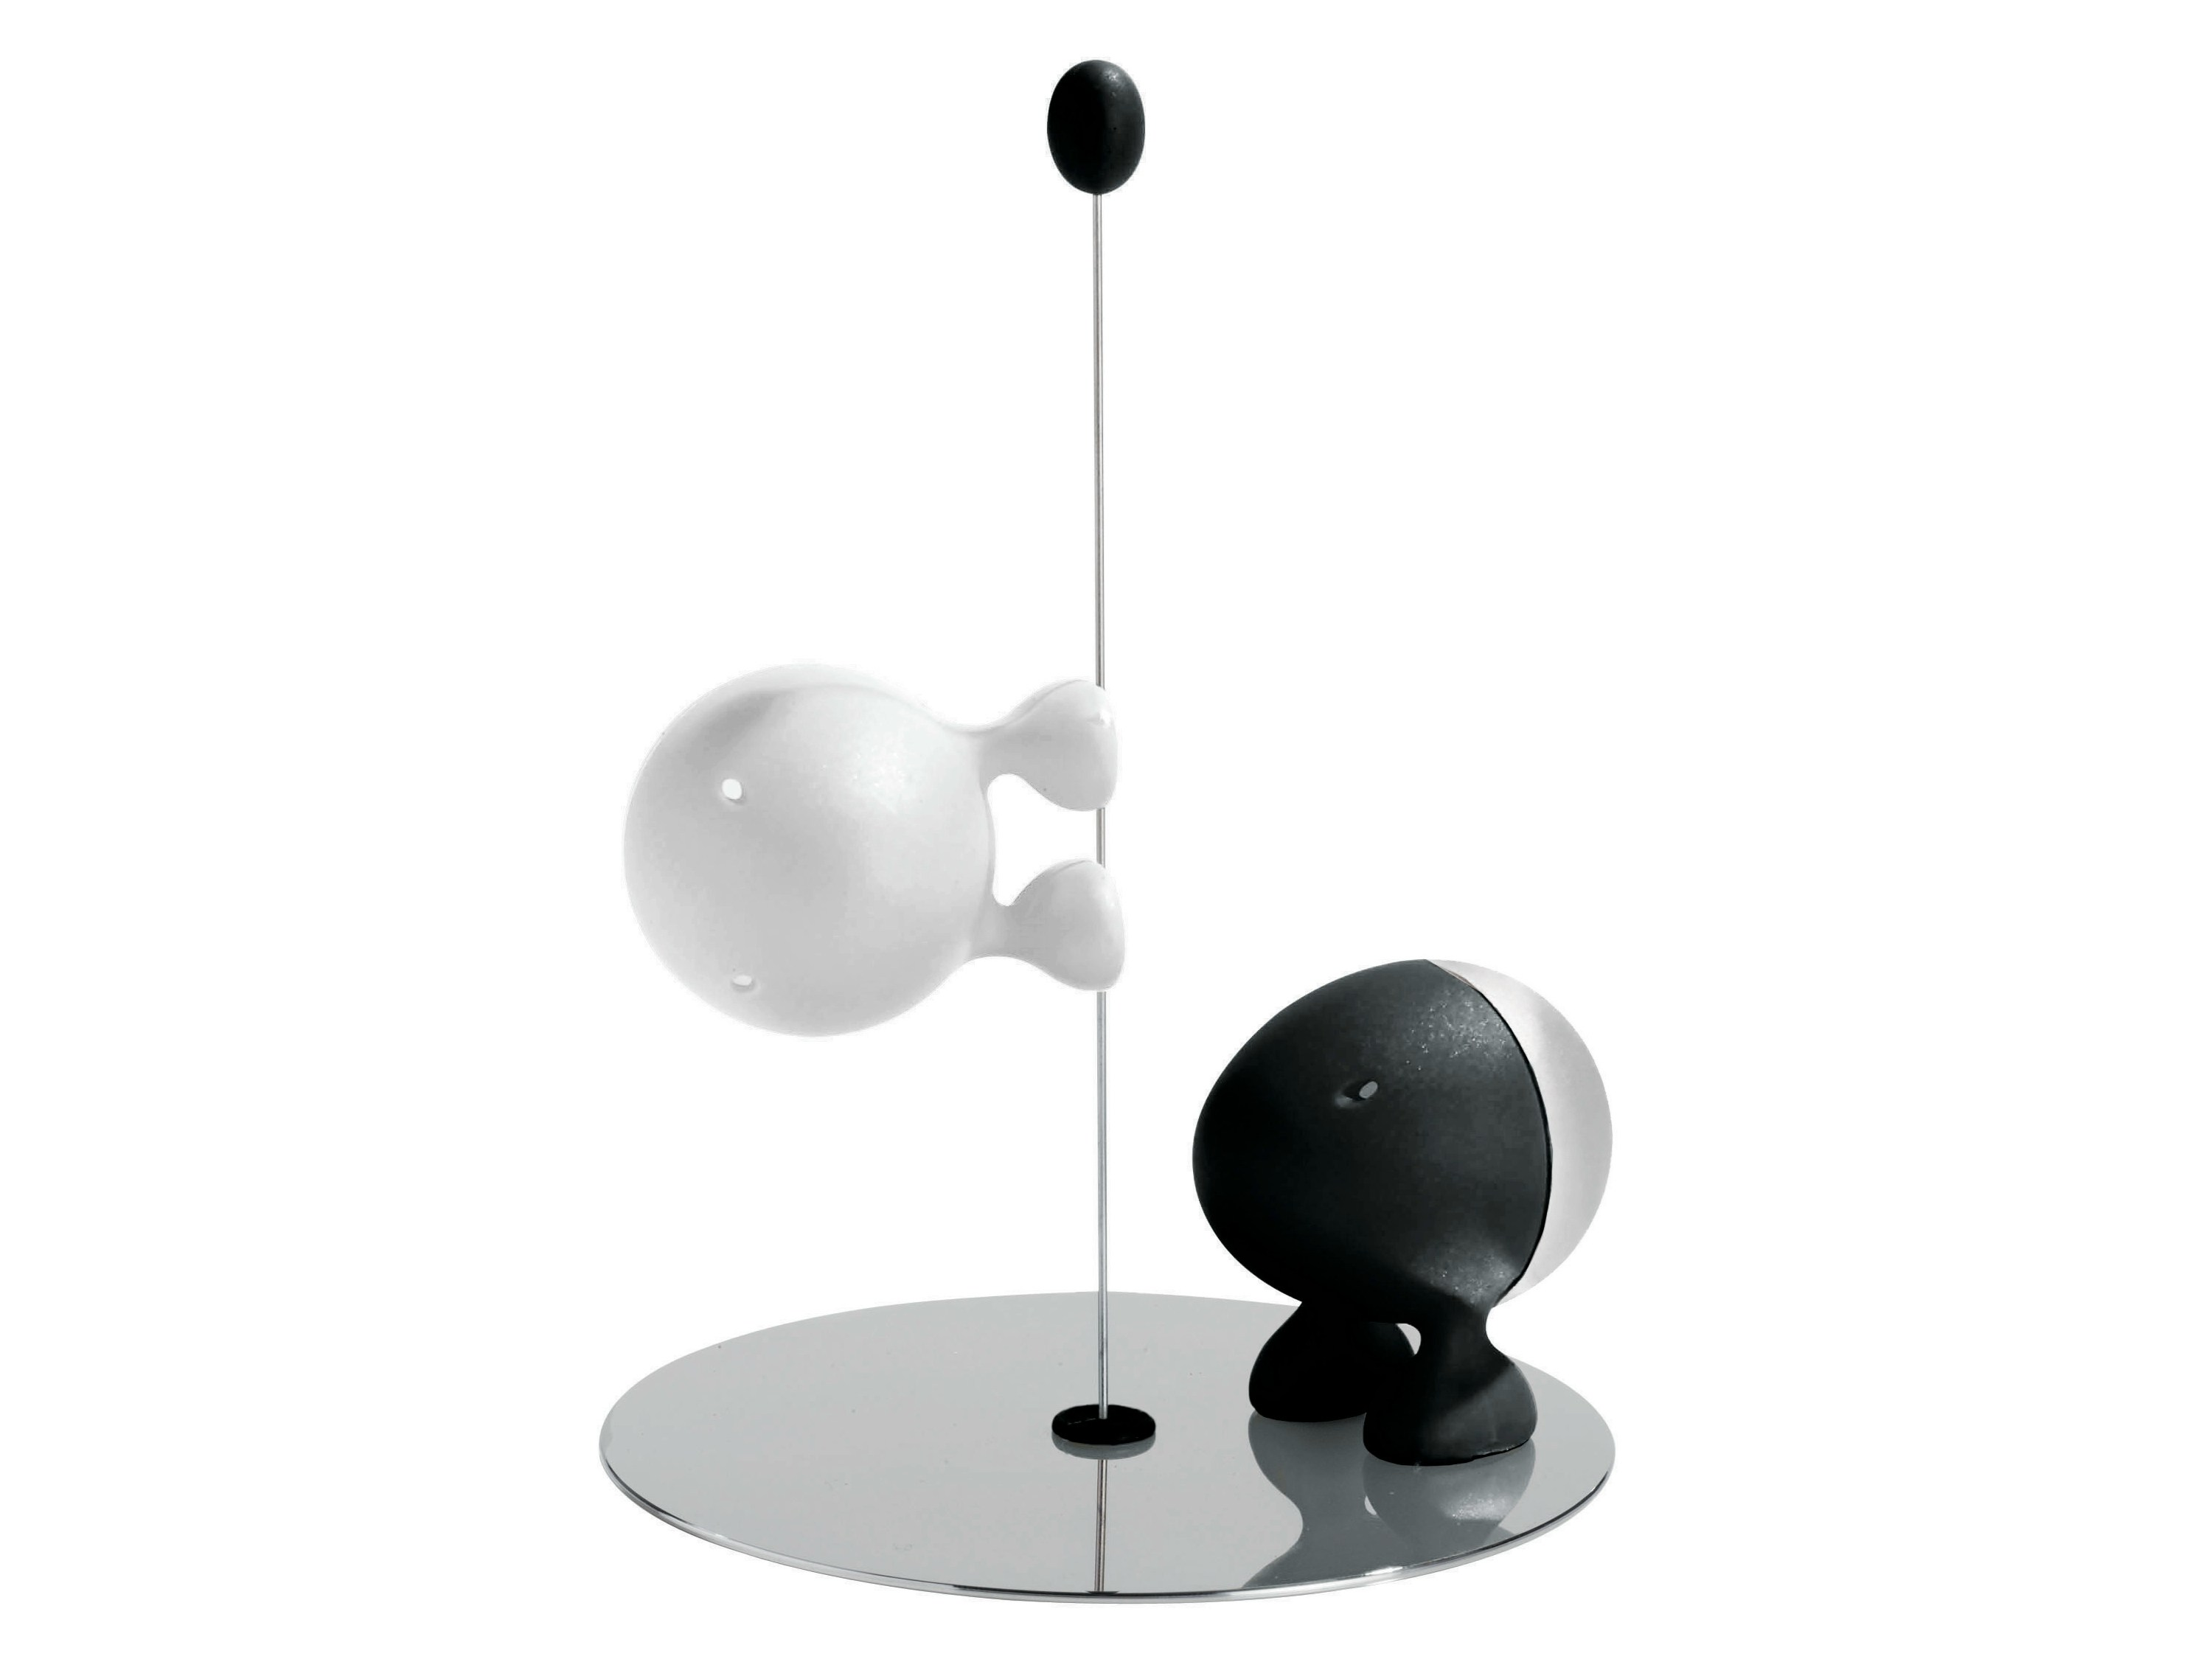 Thermoplastic resin salt and pepper shaker lilliput by for Alessi salt and pepper shakers